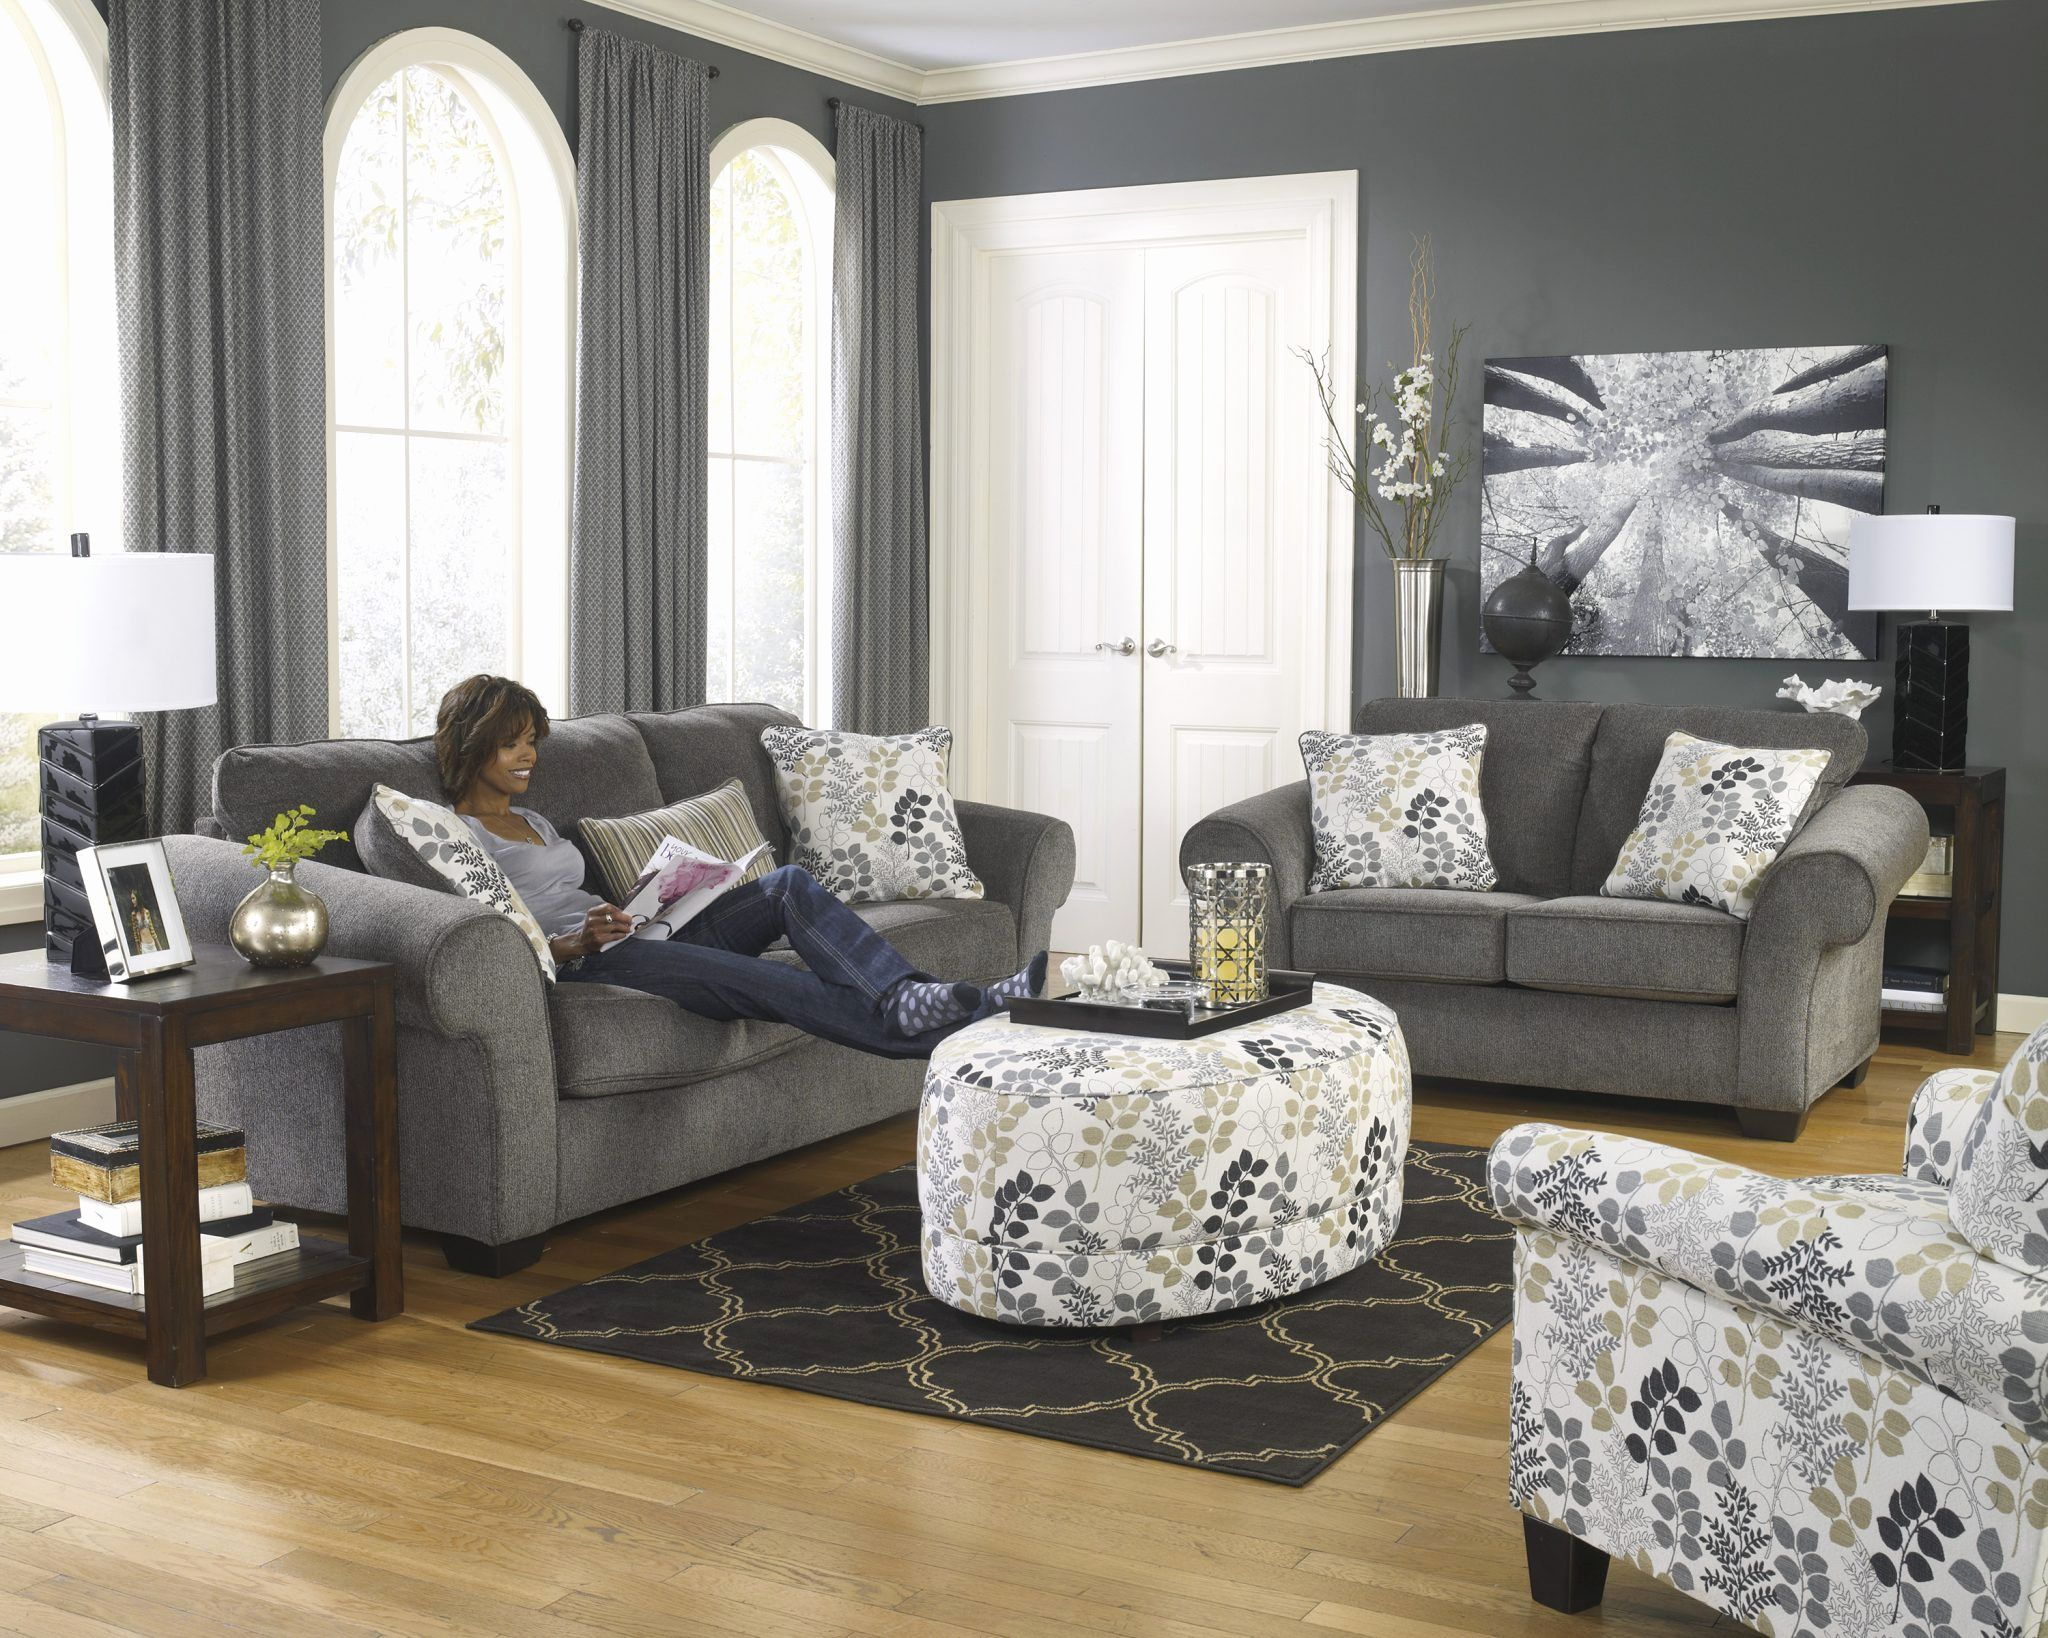 Amazing Grey Sofa And Loveseat Set Photograpy Sofas Magnificent Ashley Furniture  Grey Couch Ashley Furniture